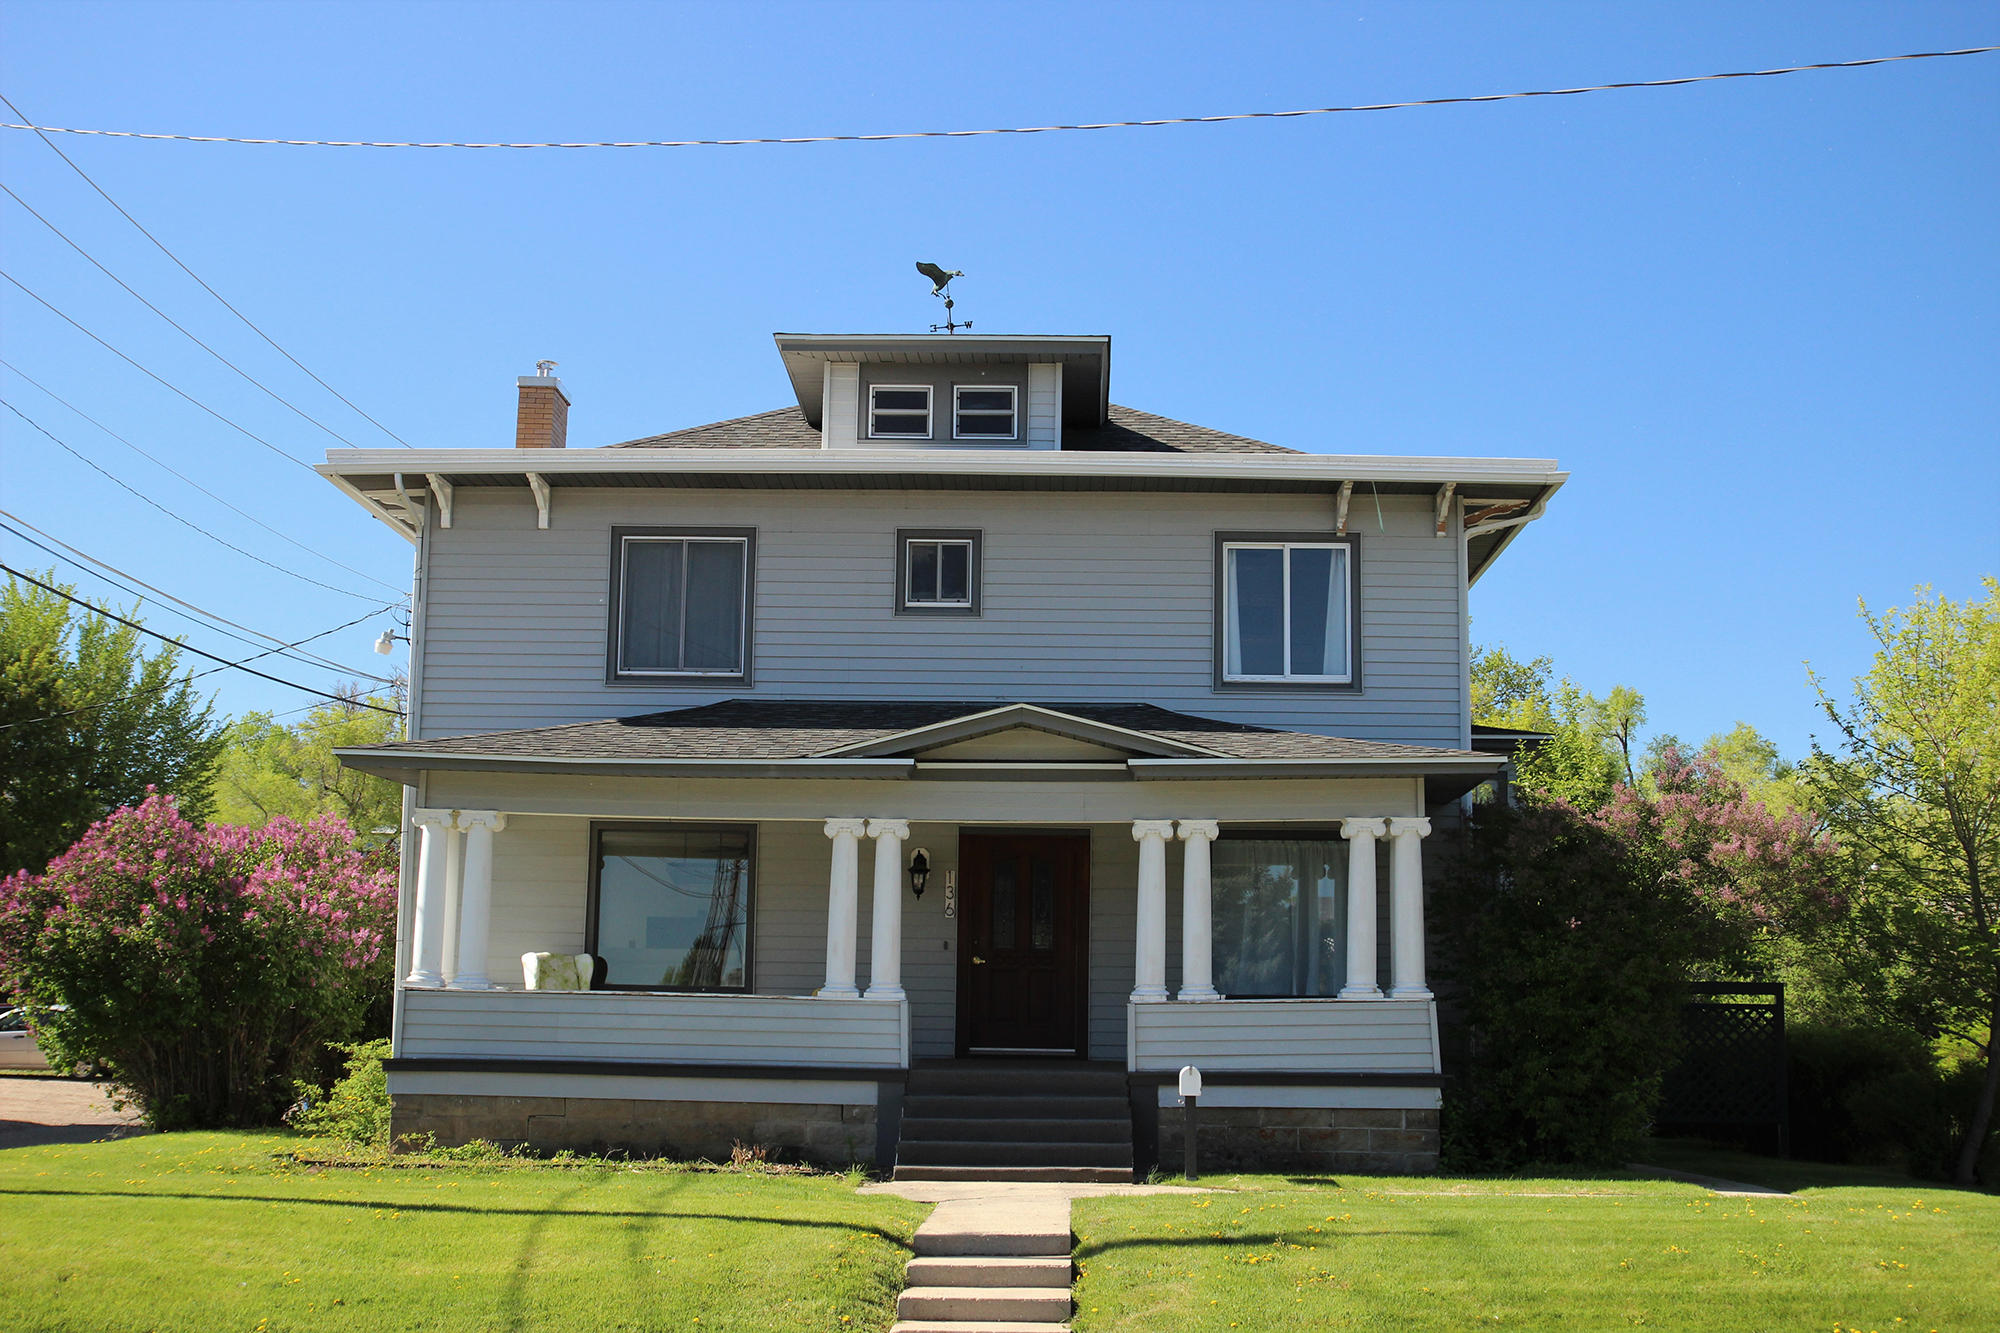 136 Works Street, Sheridan, Wyoming 82801, 5 Bedrooms Bedrooms, ,4 BathroomsBathrooms,Residential,For Sale,Works,18-497